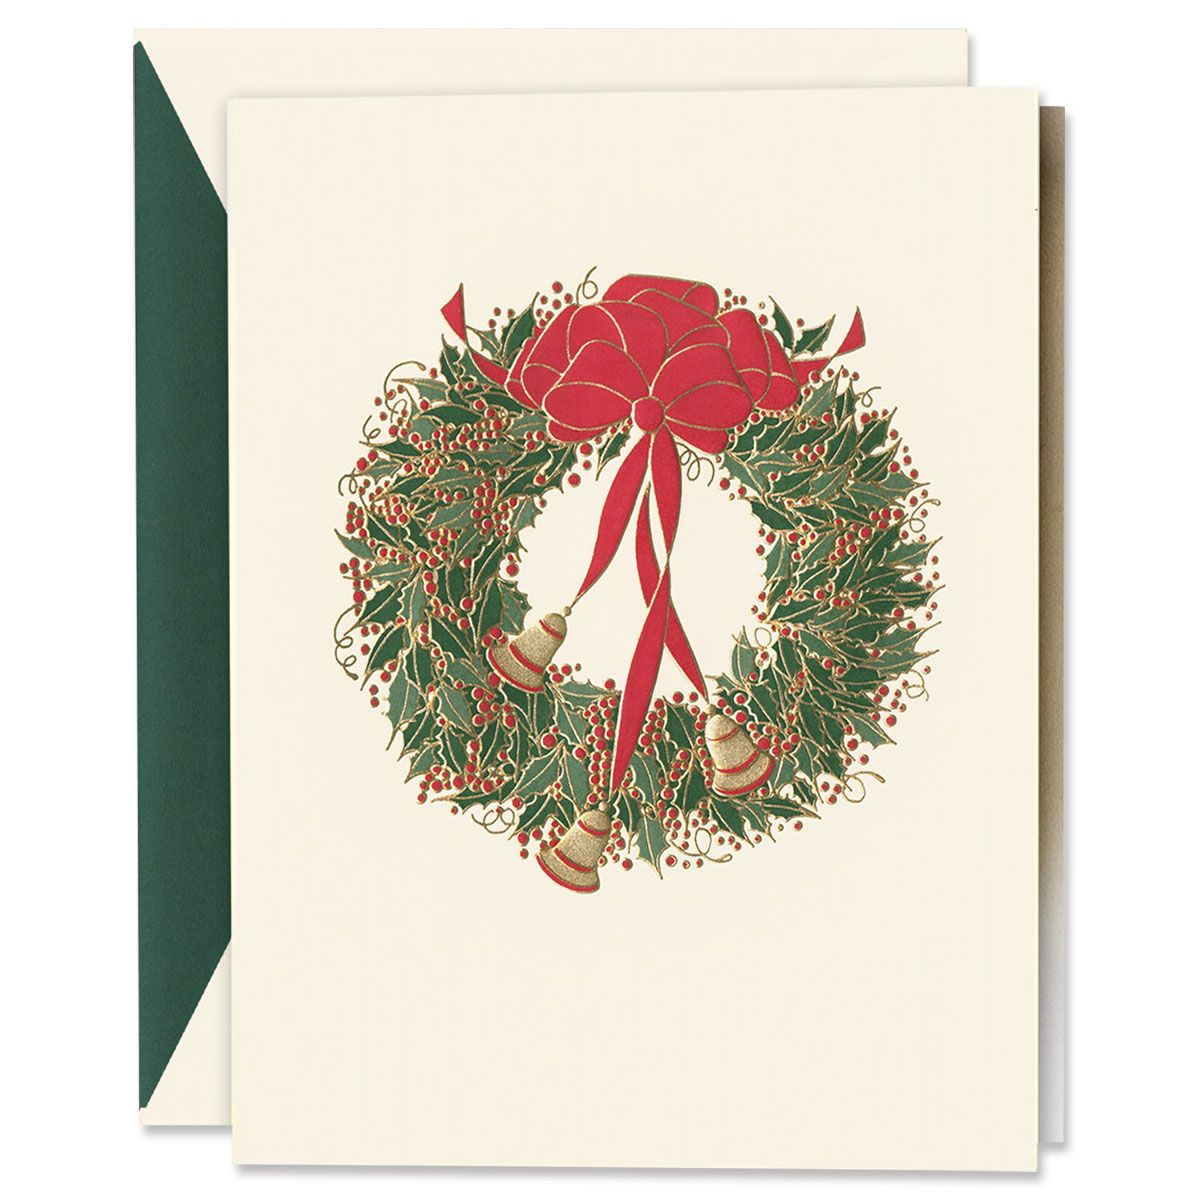 Engraved Holly Wreath with Bells Holiday Greeting Cards Boxed Set